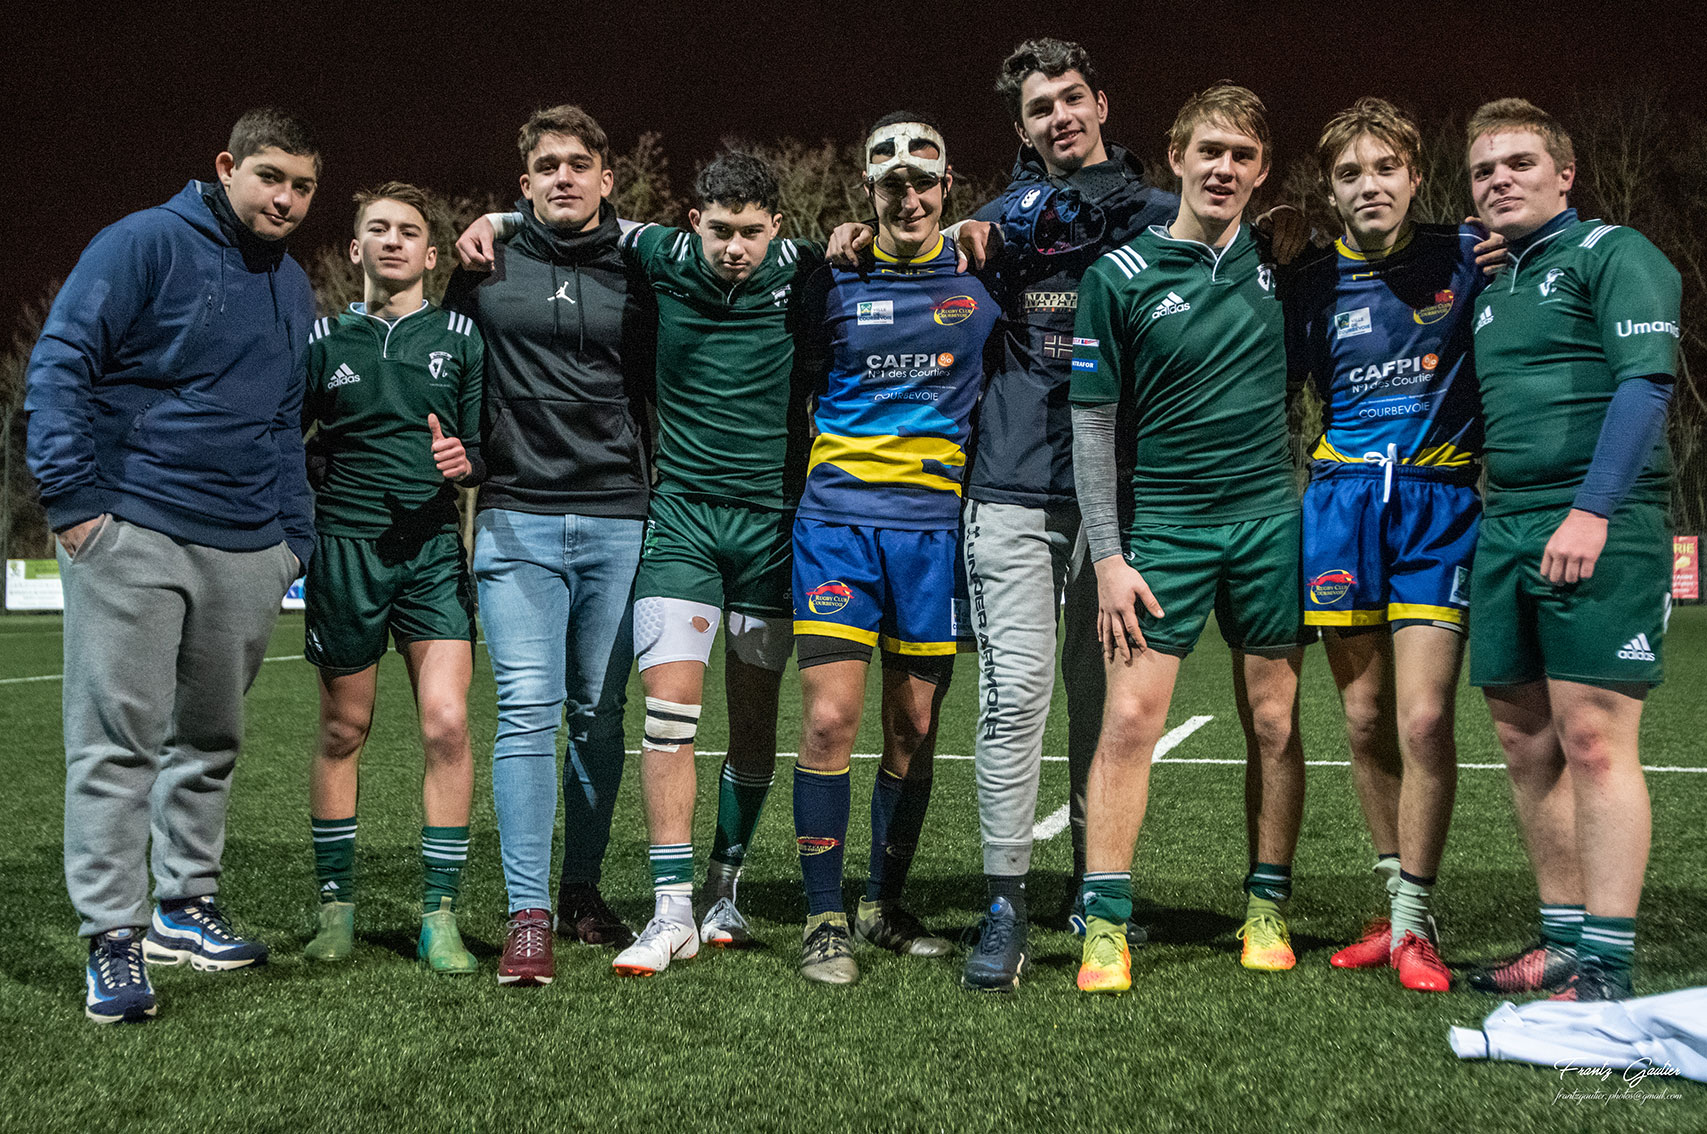 Juniors National U18 : photos de Suresnes / Courbevoie